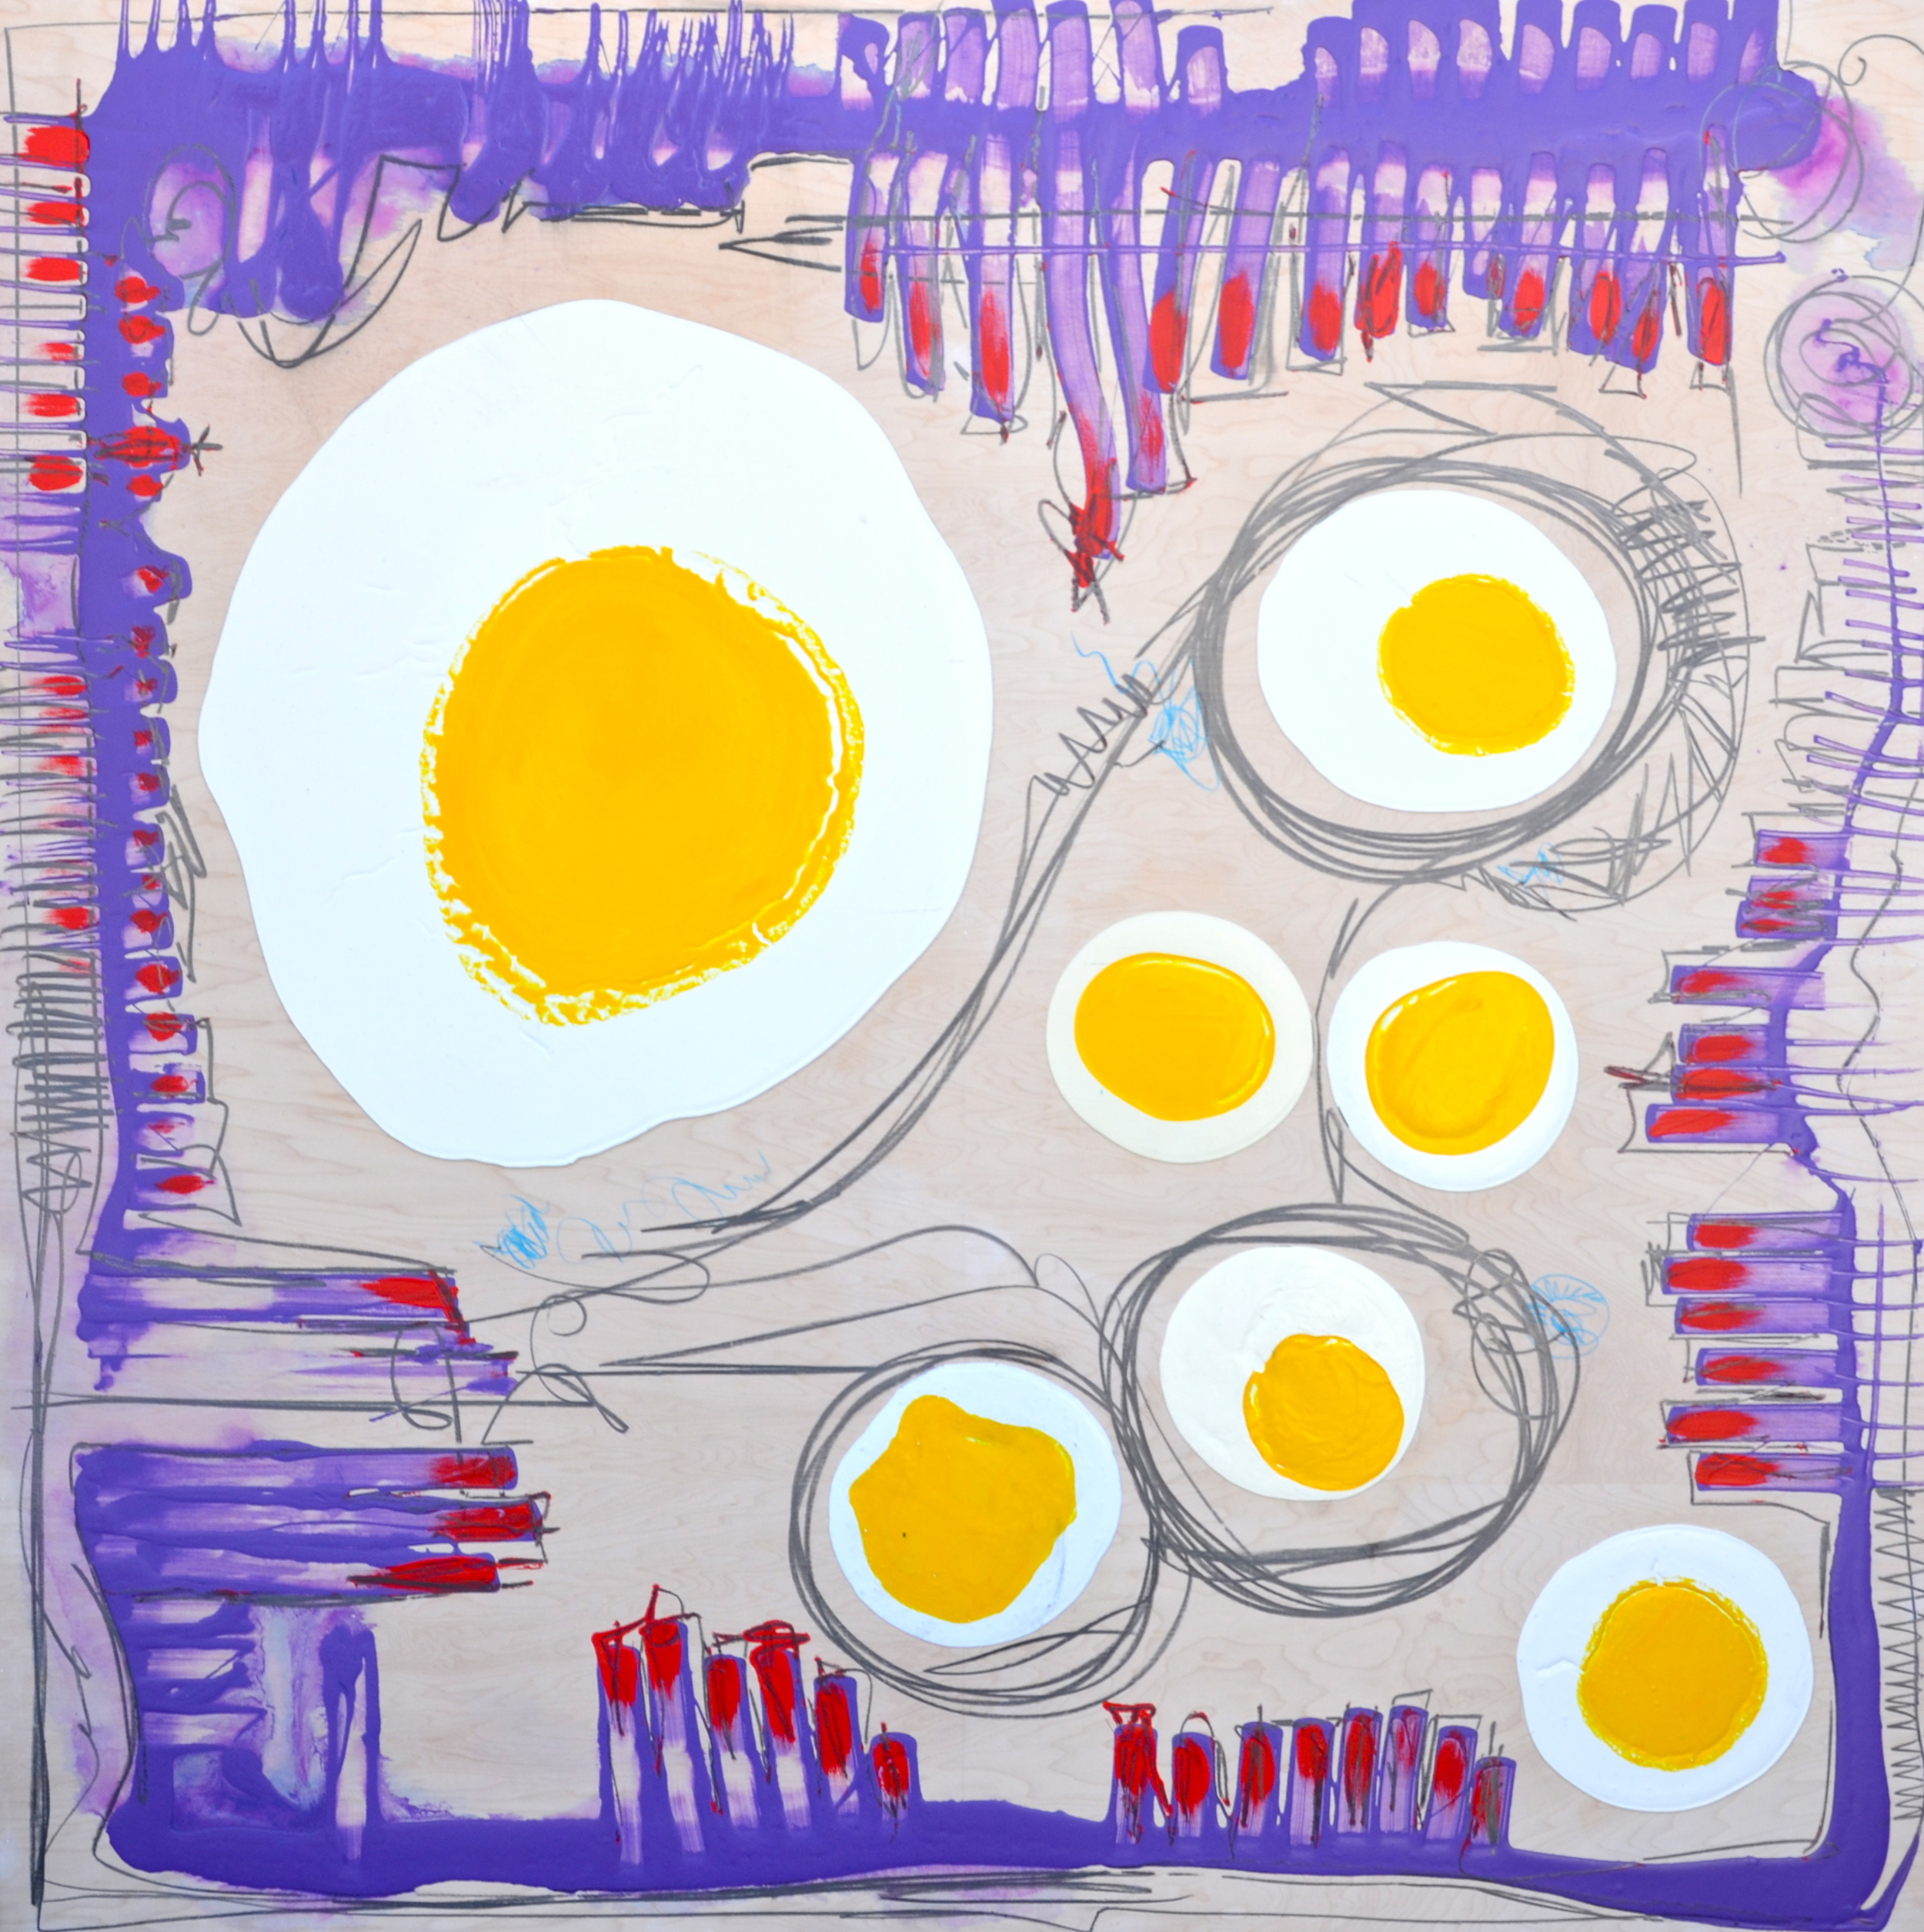 ABSTRACT #87 (aka EGGS)